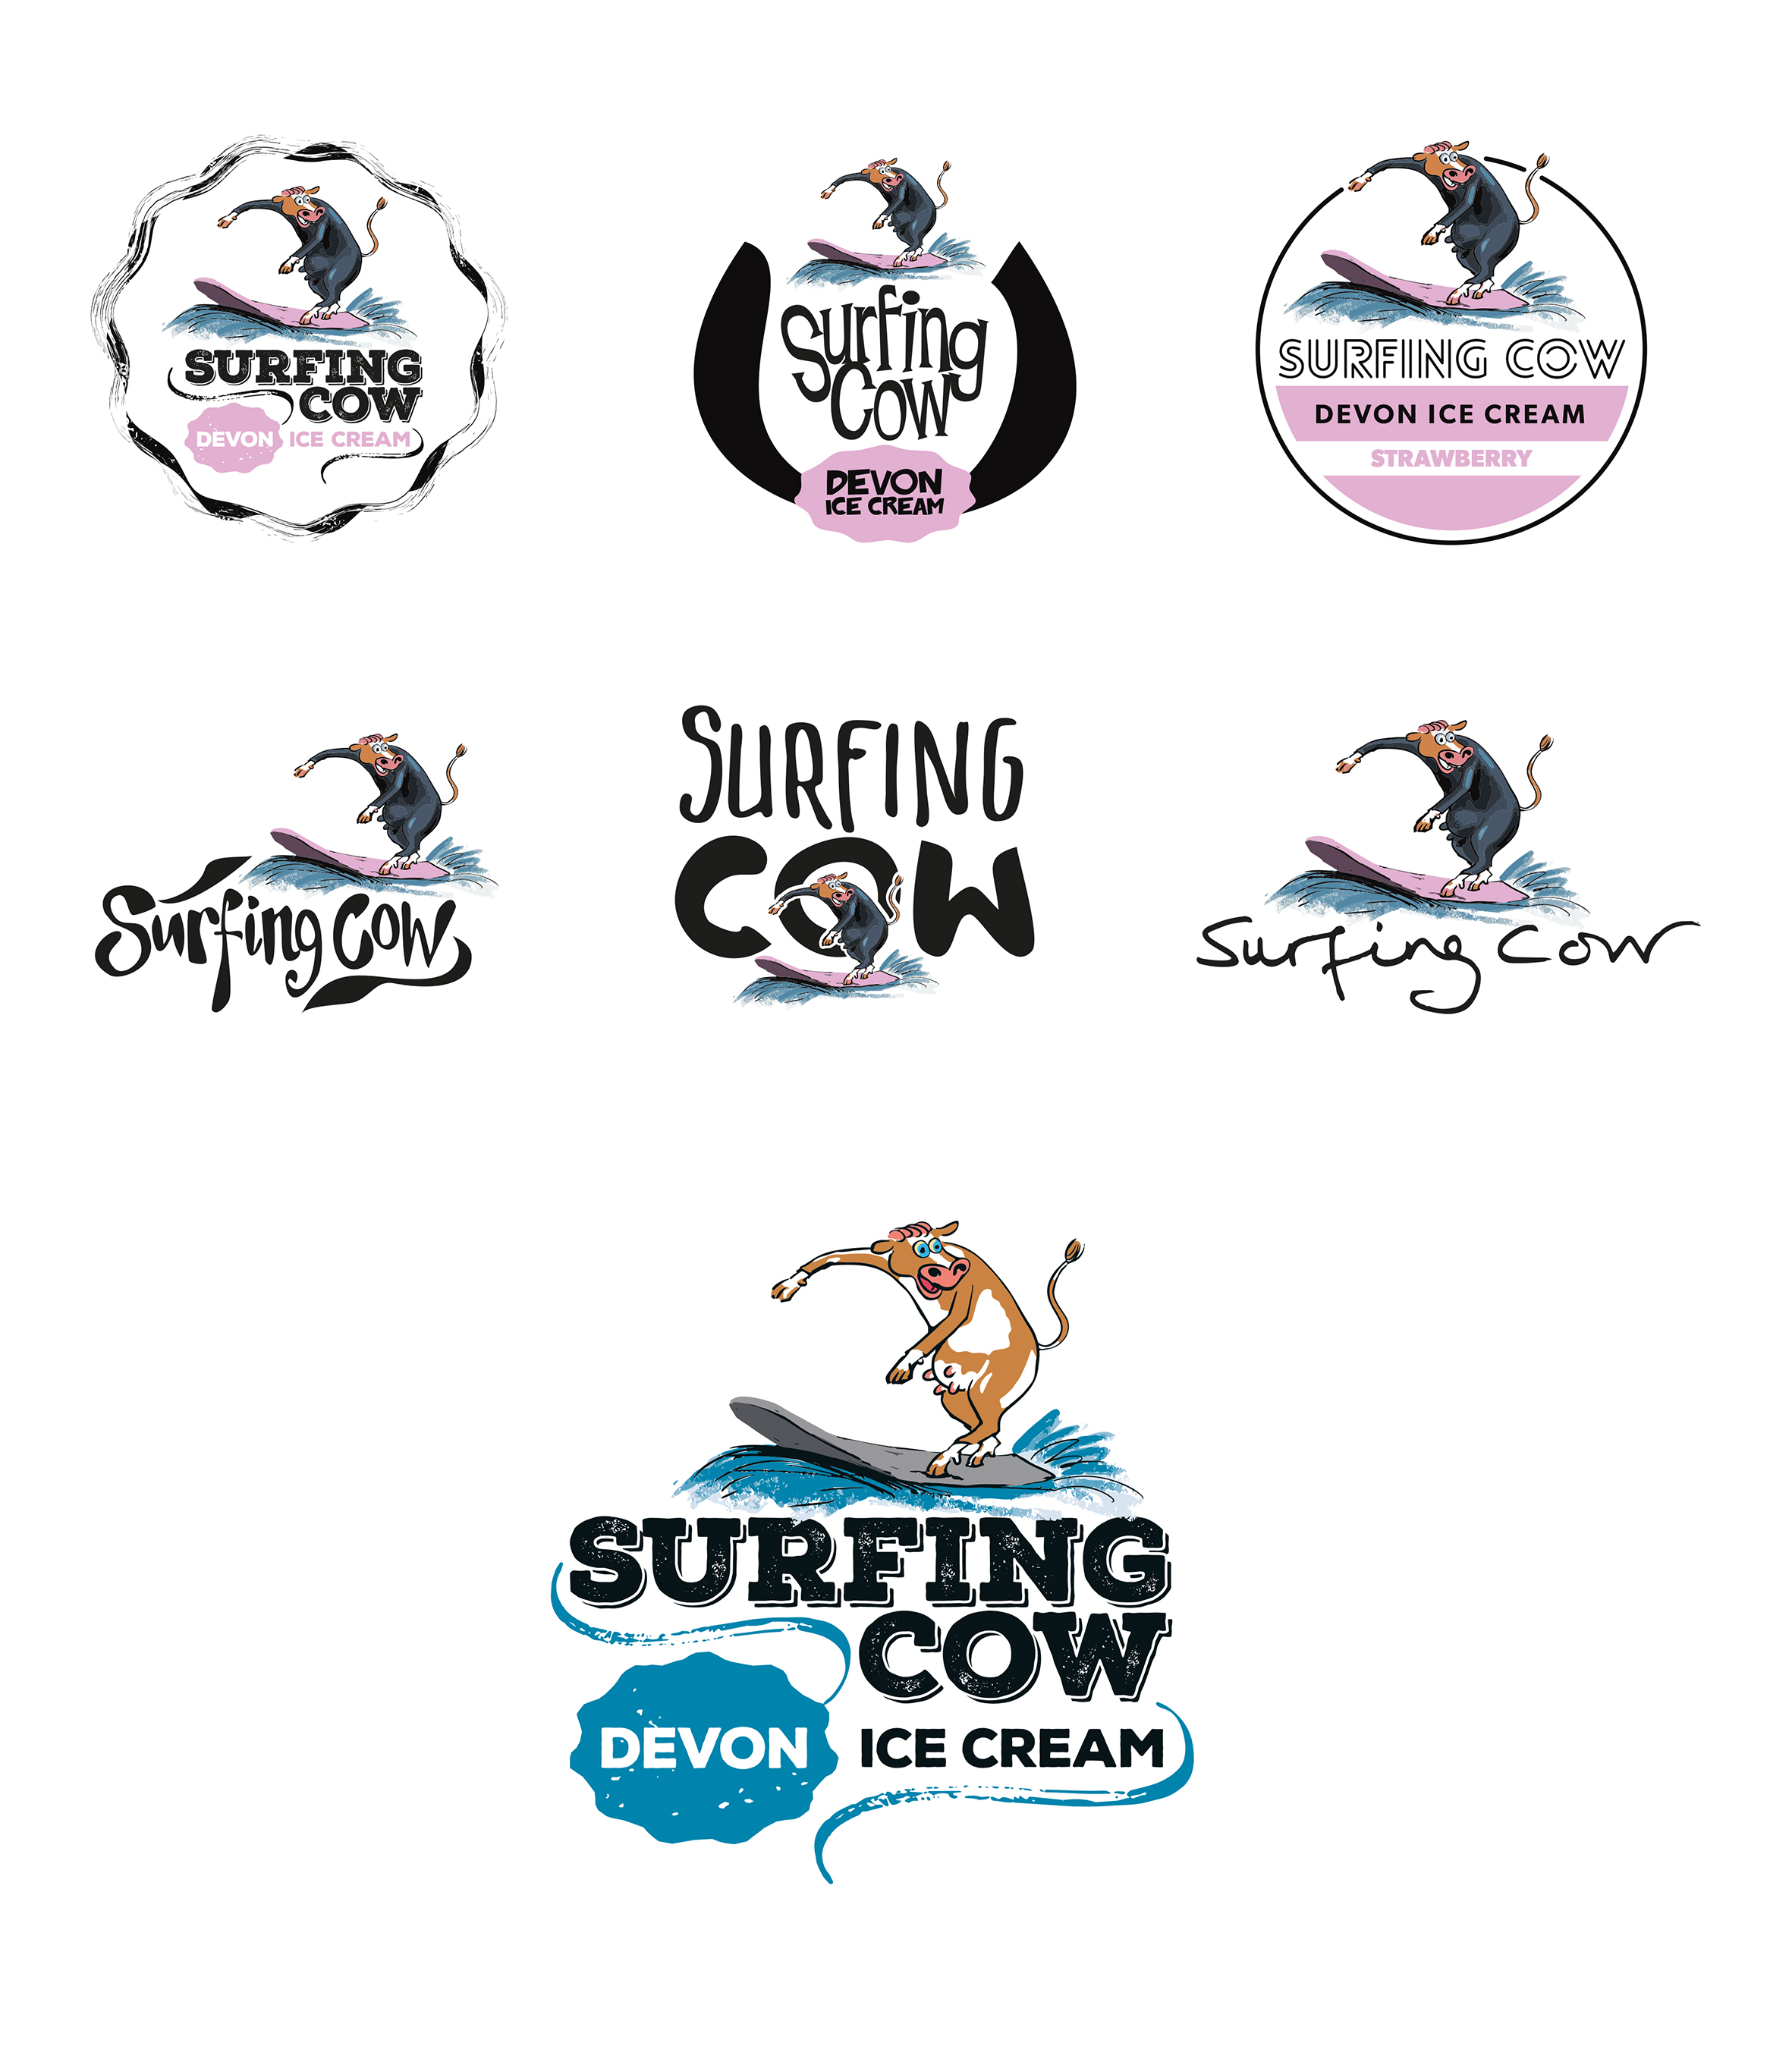 Surfing Cow Ice Cream